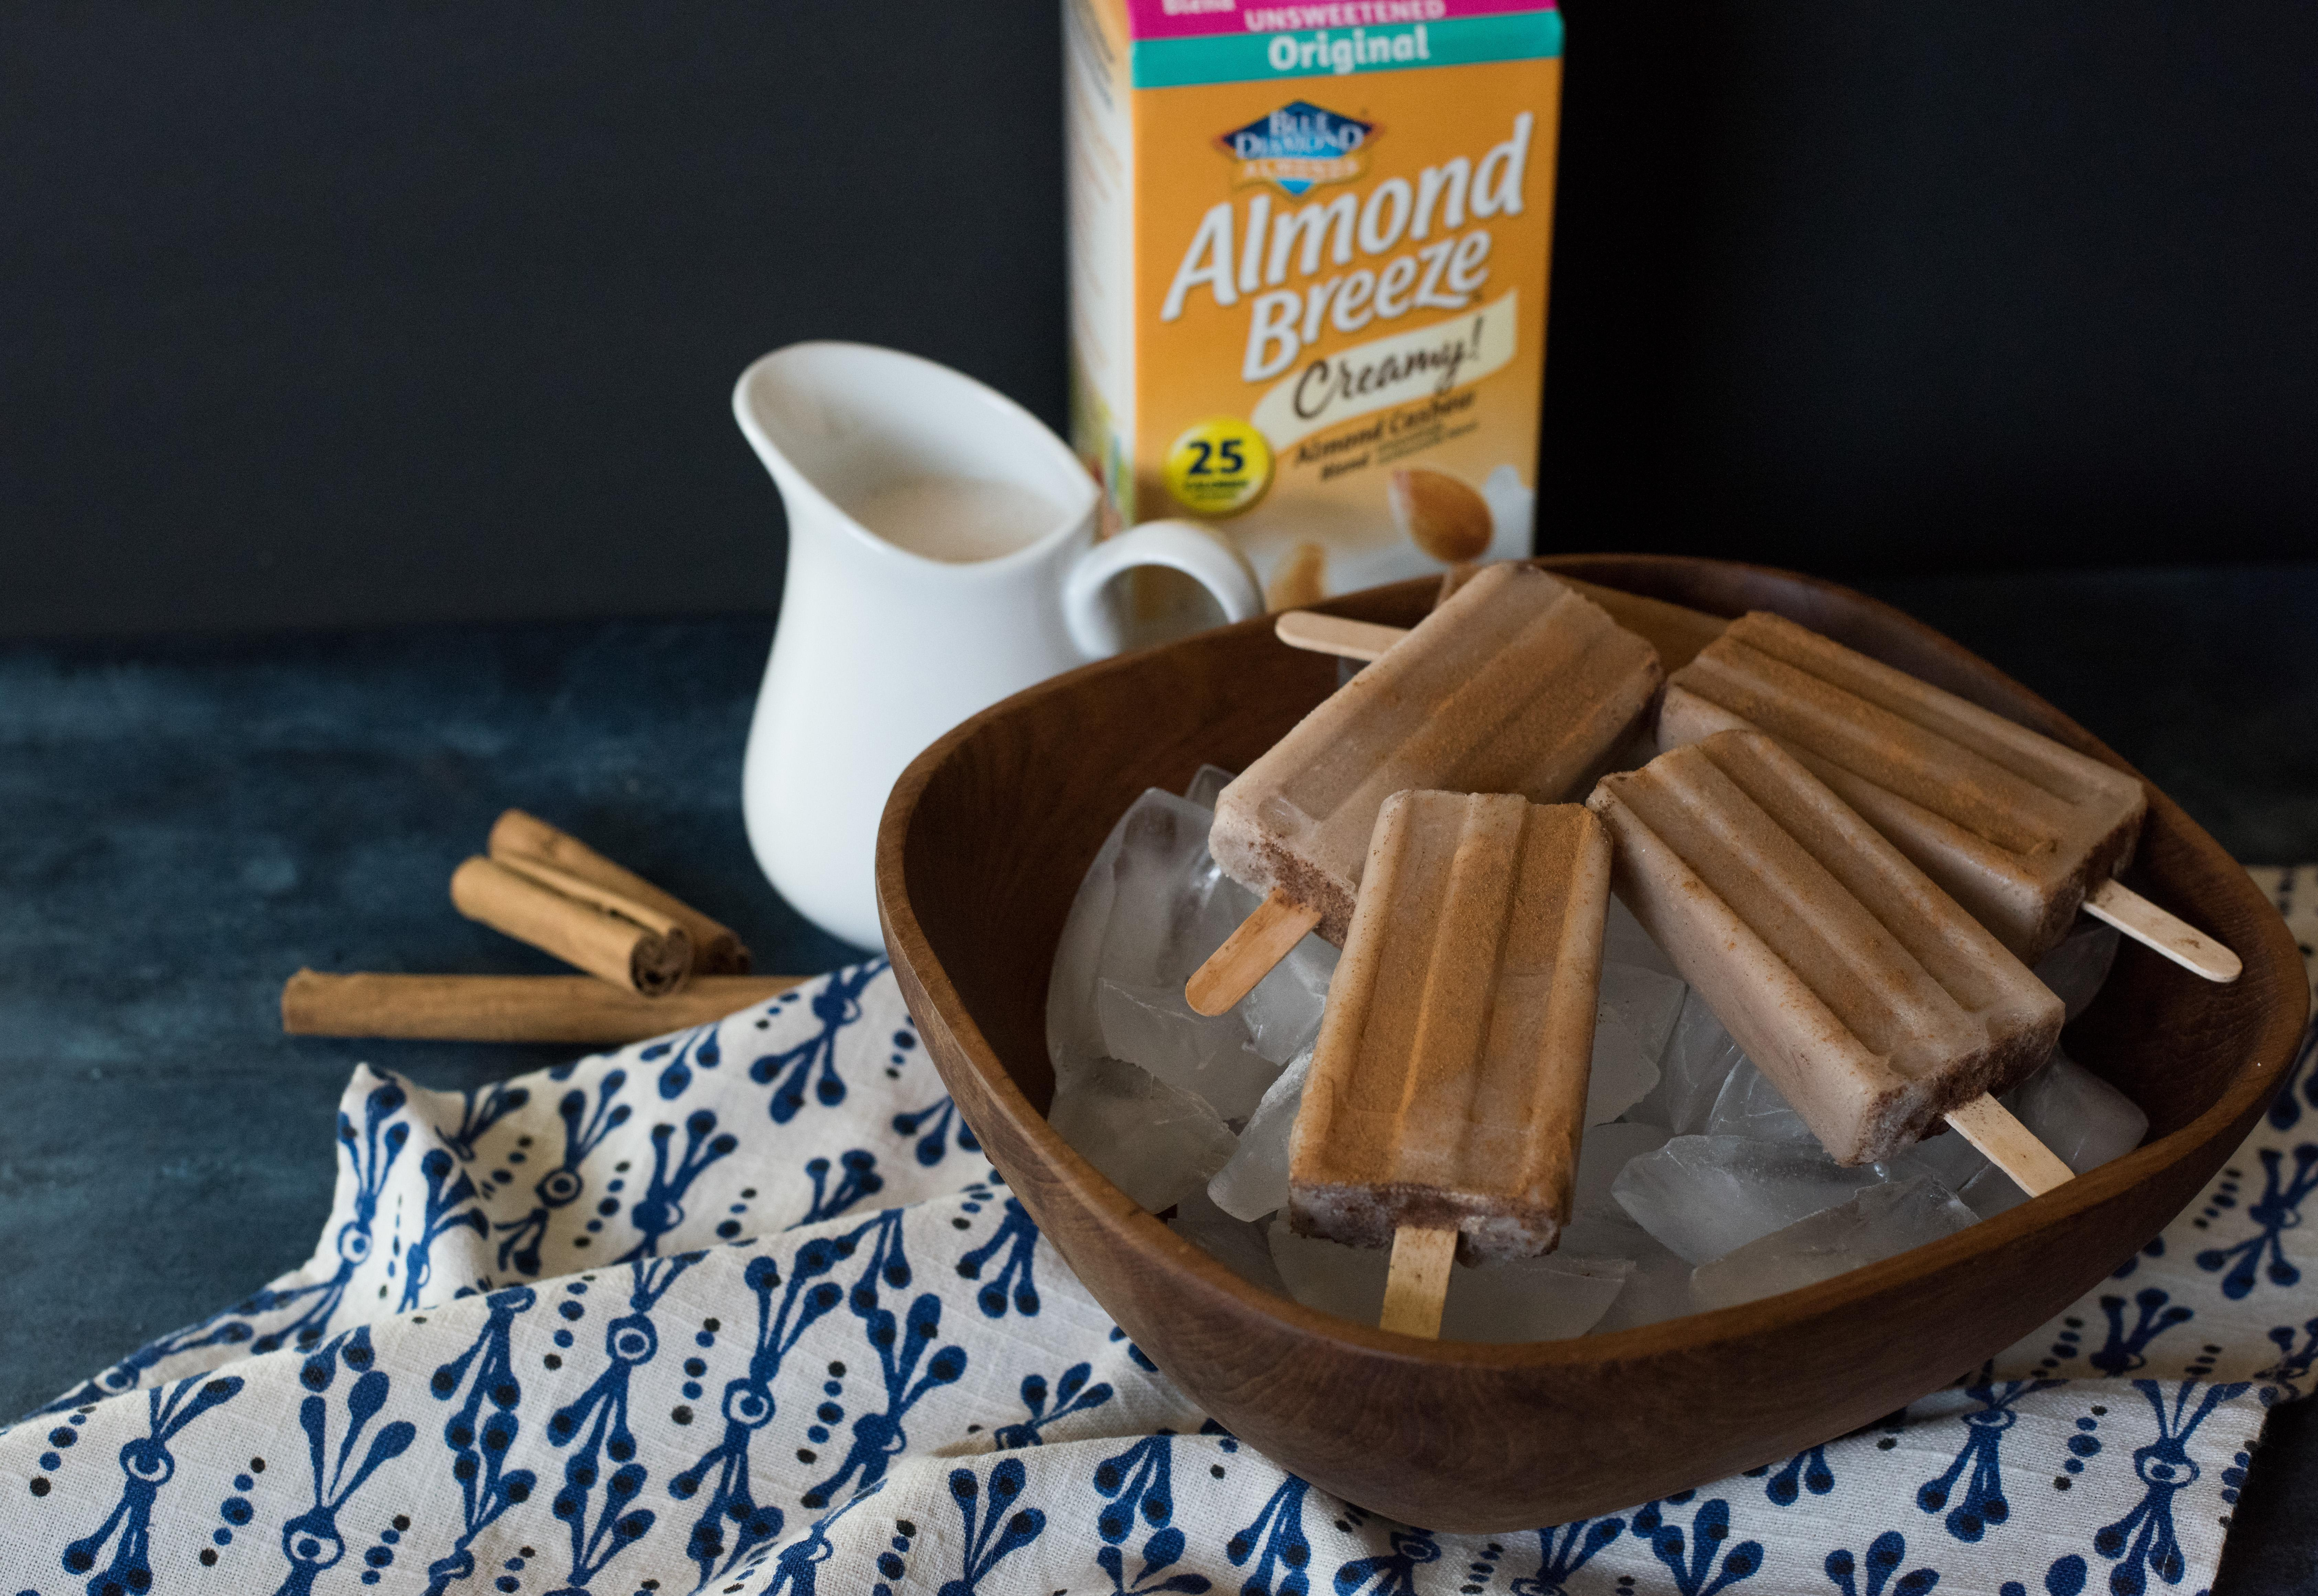 Blue Diamond Almond Breeze Horchata Paletas photo